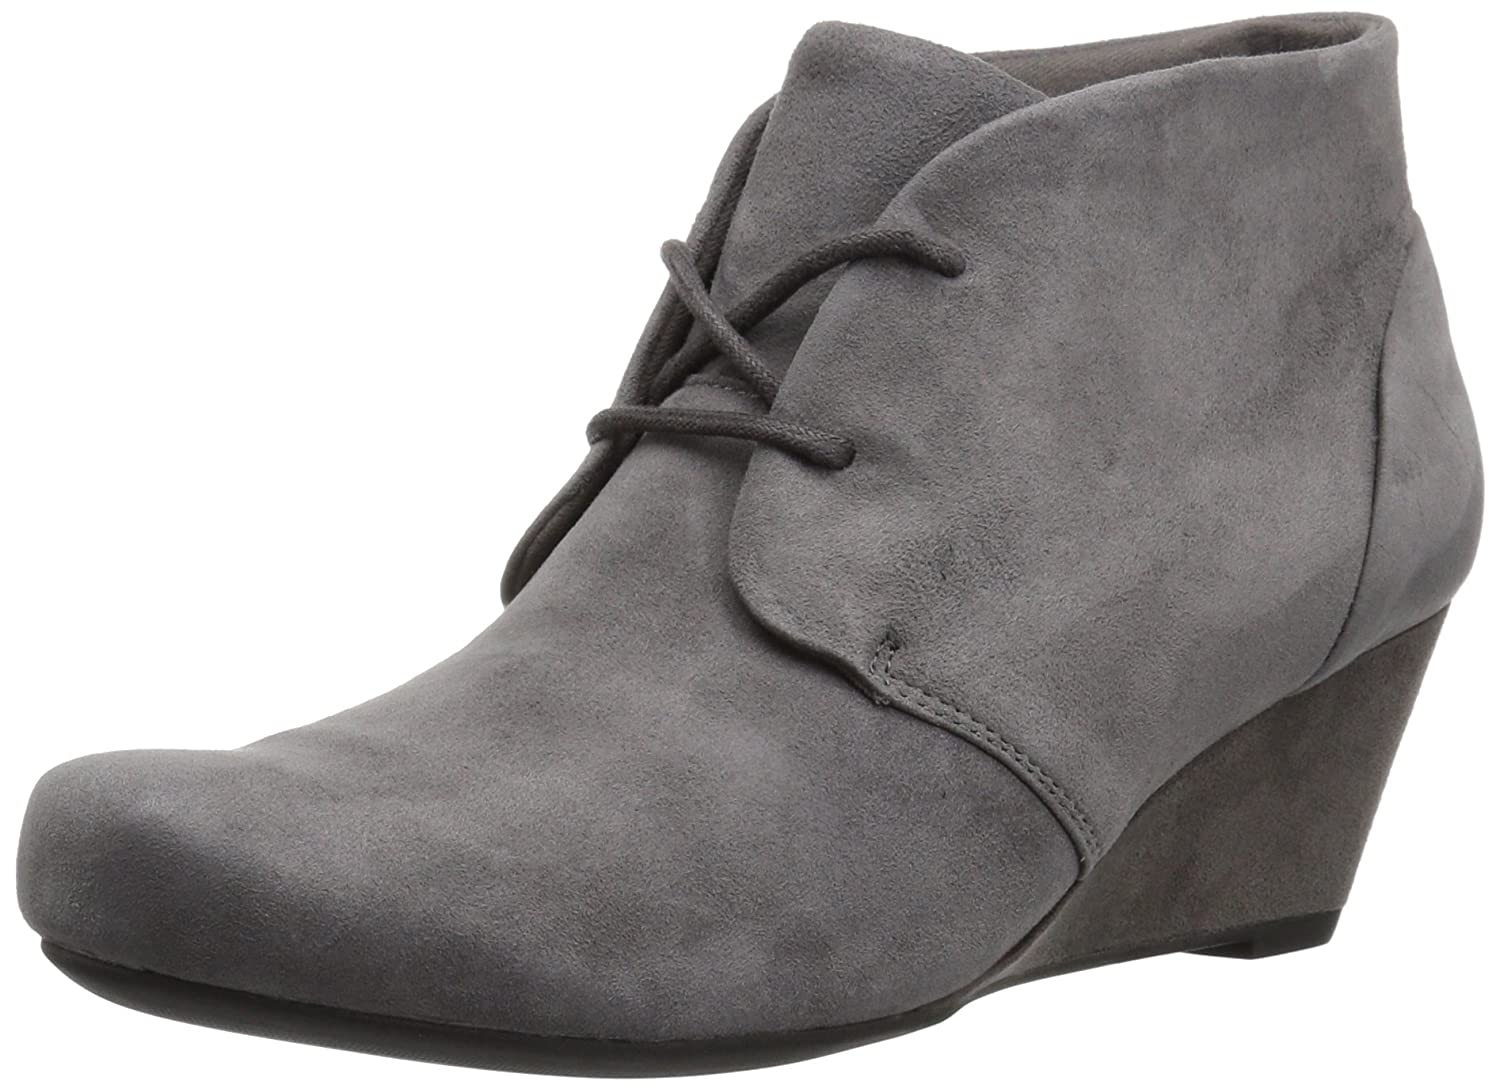 CLARKS Women's Flores Rose Ankle Bootie B01N2TBD5V 12 B(M) US|Grey Suede